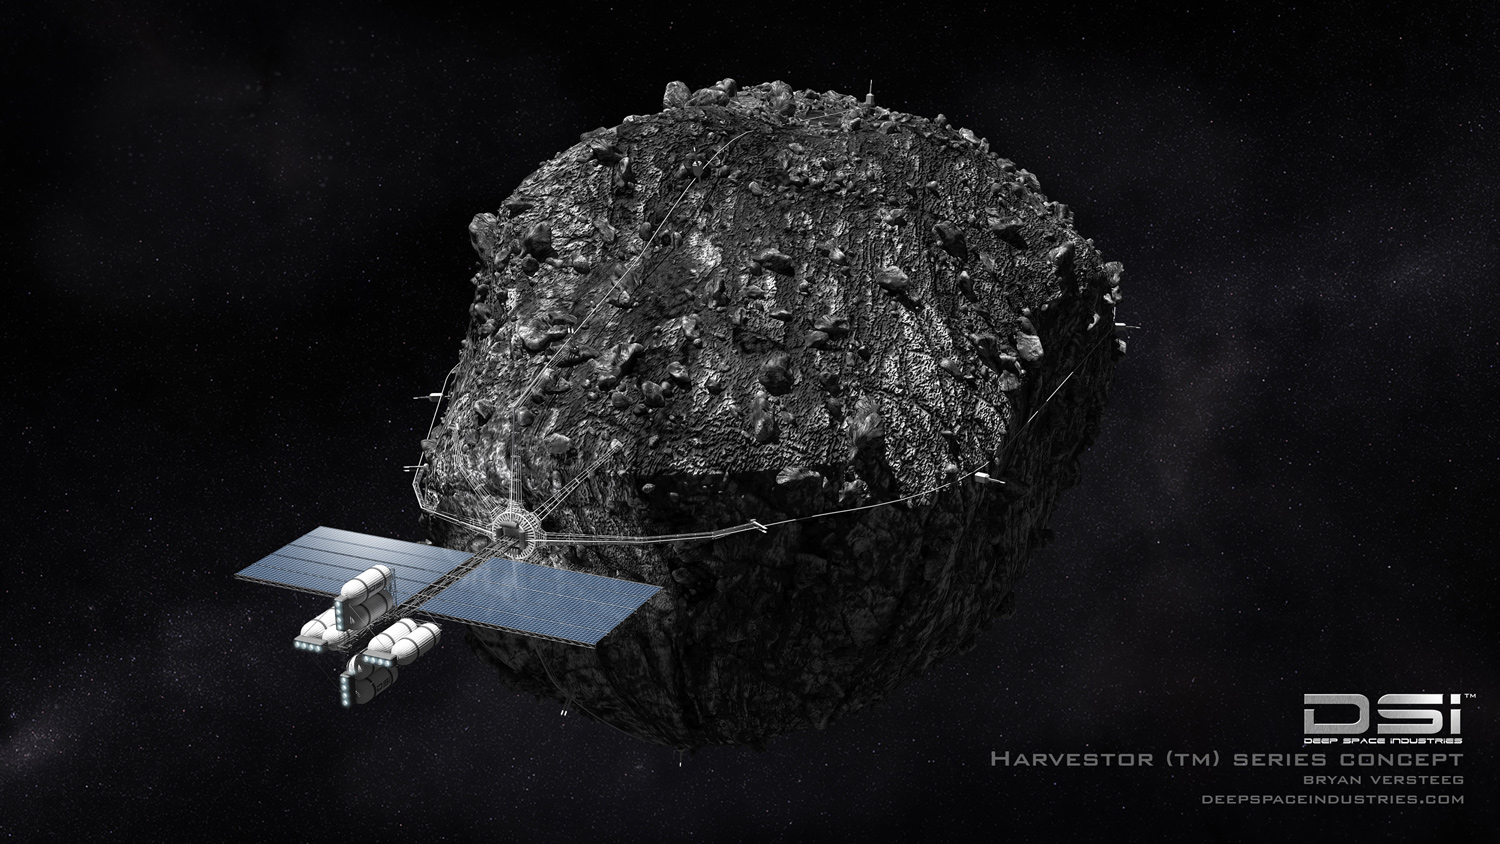 Luxembourg Aims to Jump-Start Asteroid Mining